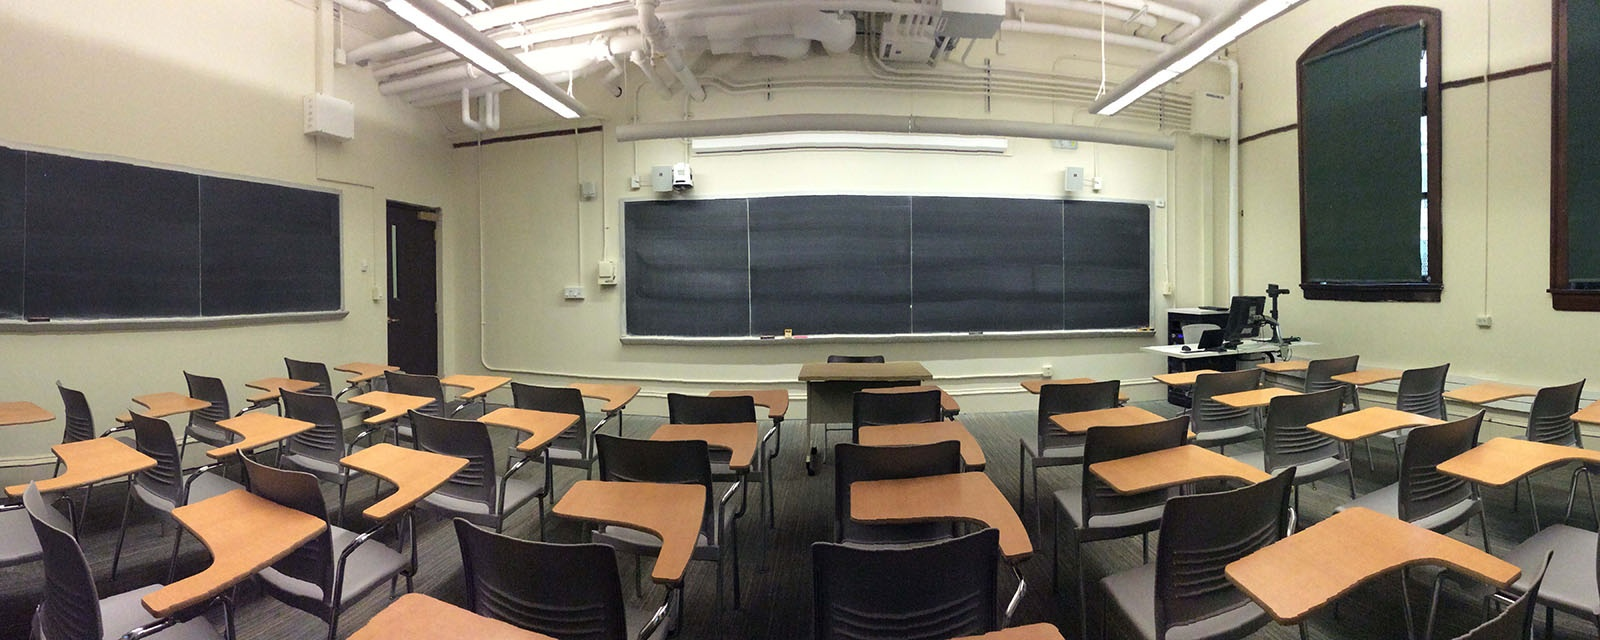 Carnegie 114 panorama from rear to front, chairs moveable with desk attached, teaching station to left of entrance